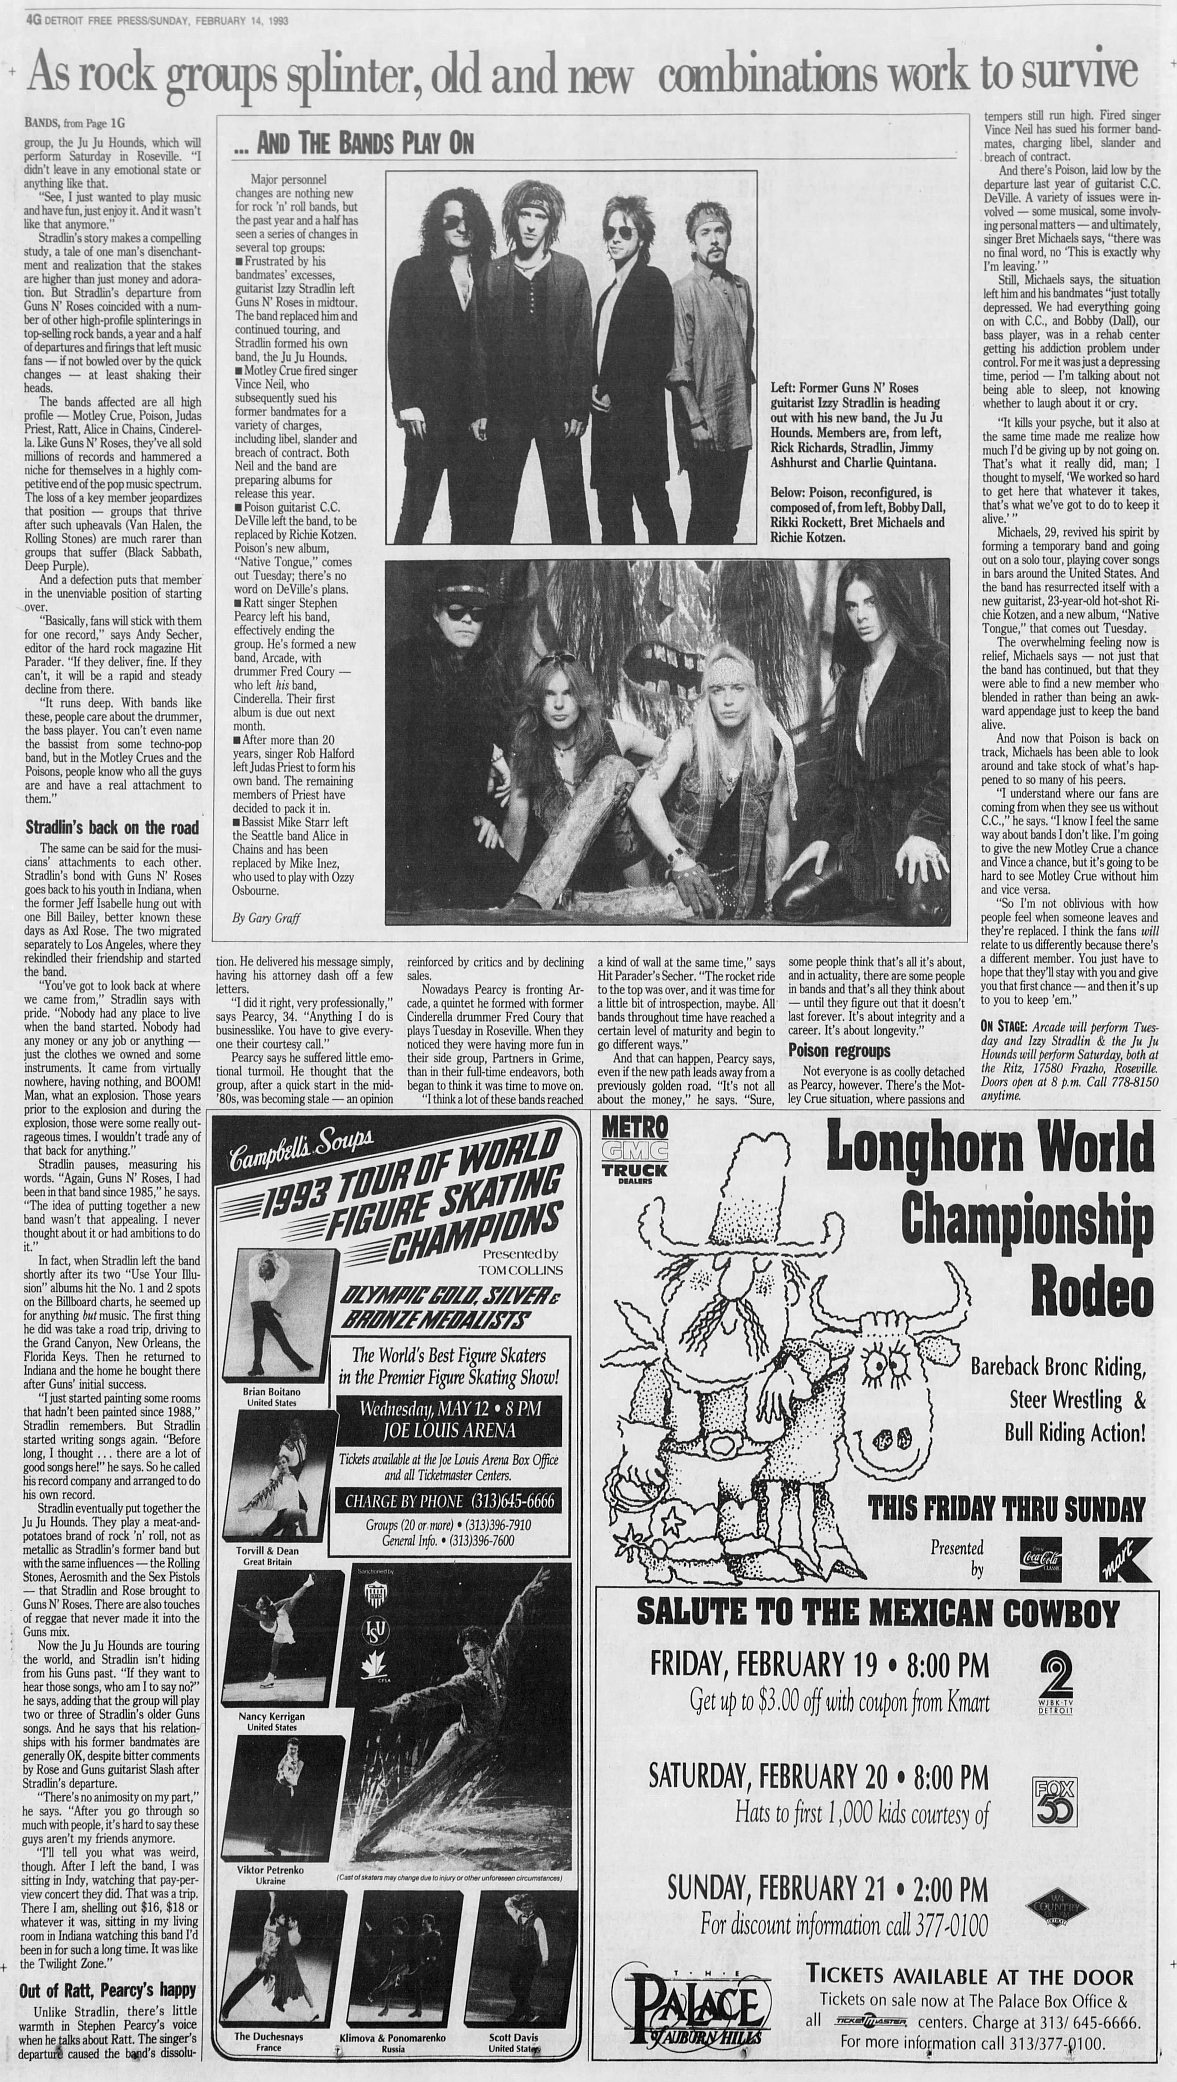 1993.02.14 - Detroit Free Press - Bands splinter, churn, go back to work (Izzy) 1993_095